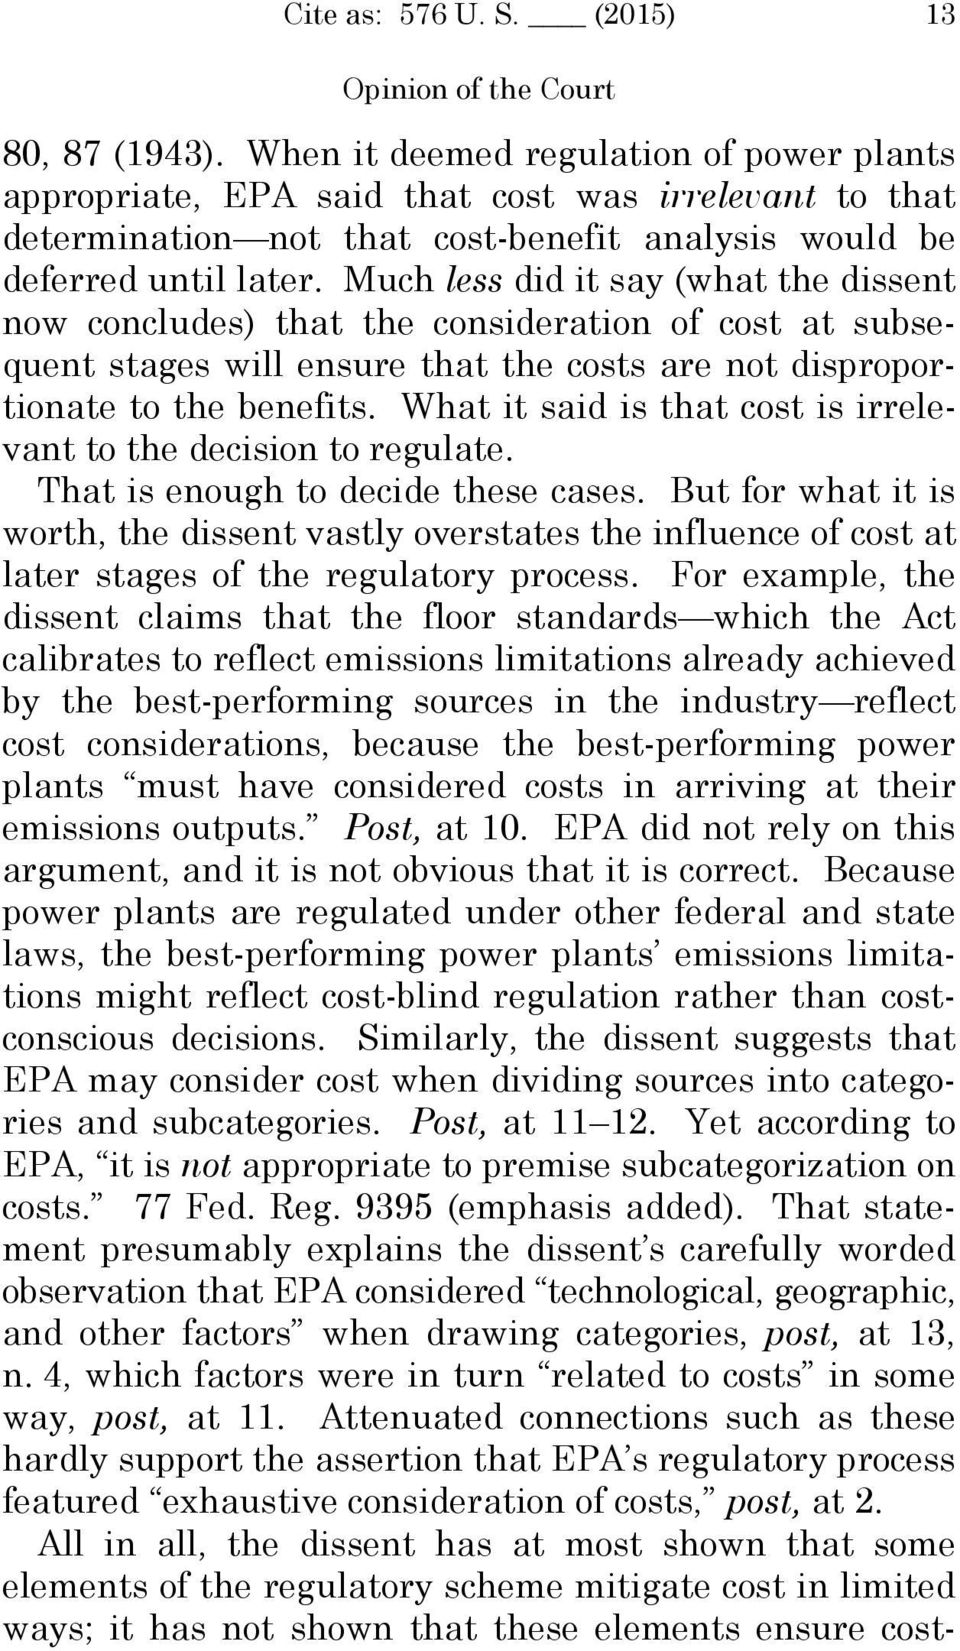 Much less did it say (what the dissent now concludes) that the consideration of cost at subsequent stages will ensure that the costs are not disproportionate to the benefits.